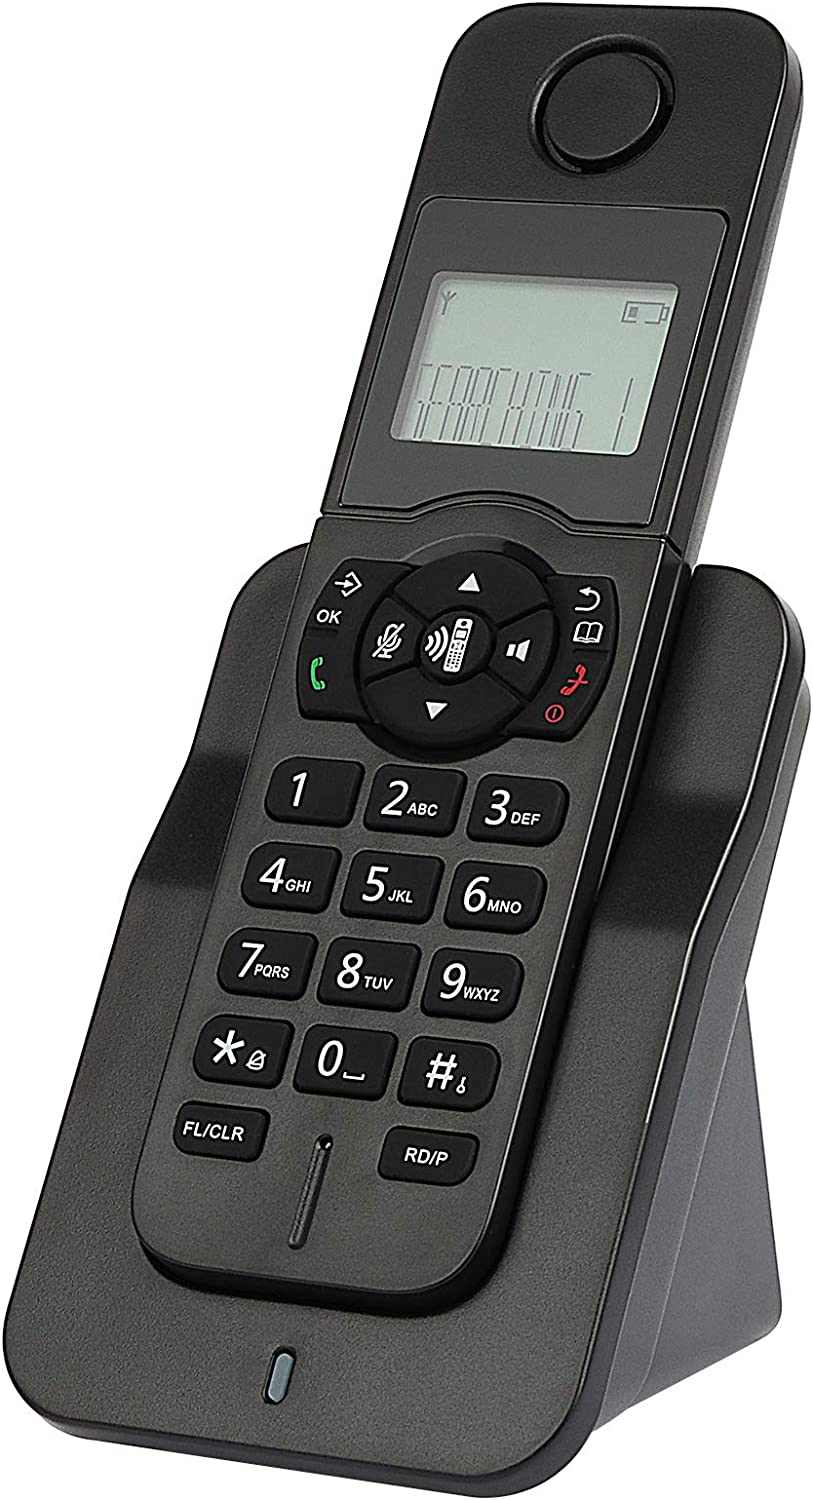 Cordless Home Phone with Basic Call Blocking, Space Saving, One Key Redial, Flash, Mute, Easy to Operate,16 Kinds of Interface Languages, Ringing Tone/Earpiece/Hands-Free Volume Adjustable, Black